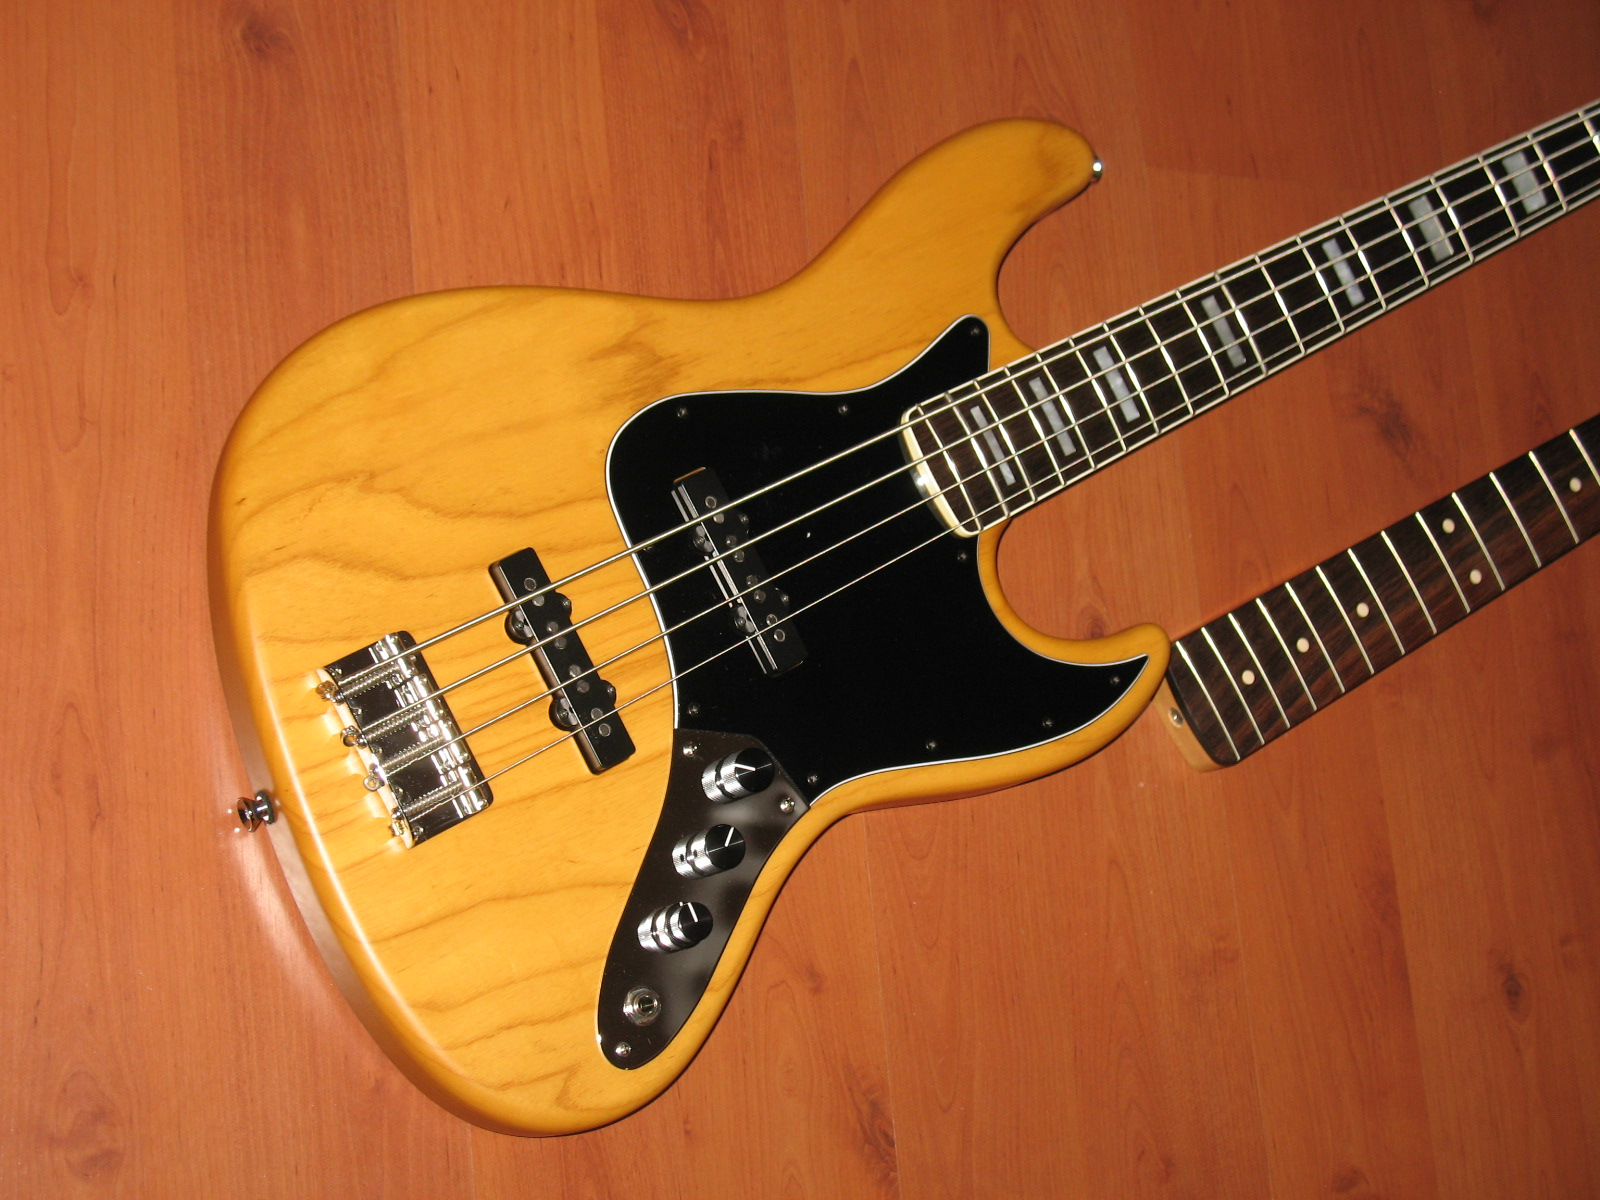 No longer available - '75 RI Jazz Fender-Warmoth-Sadowsky